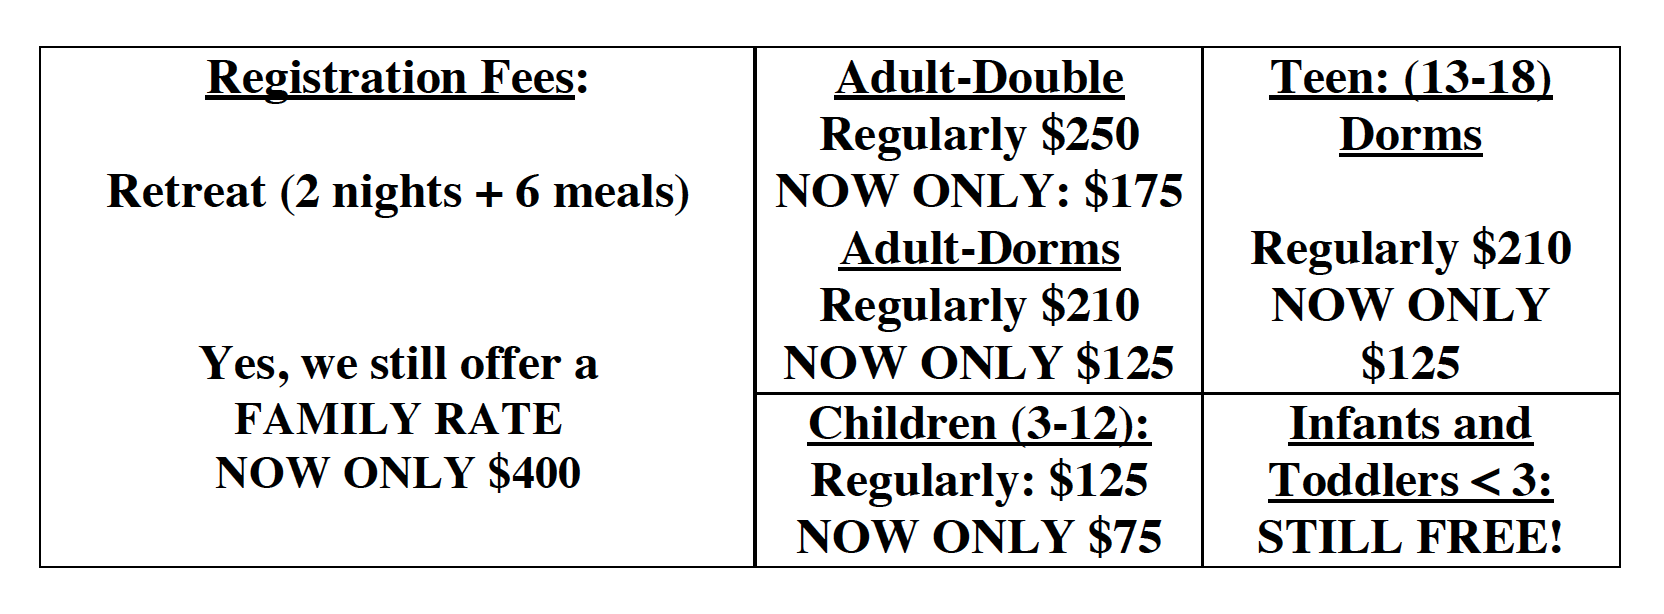 2019 Retreat Prices.png